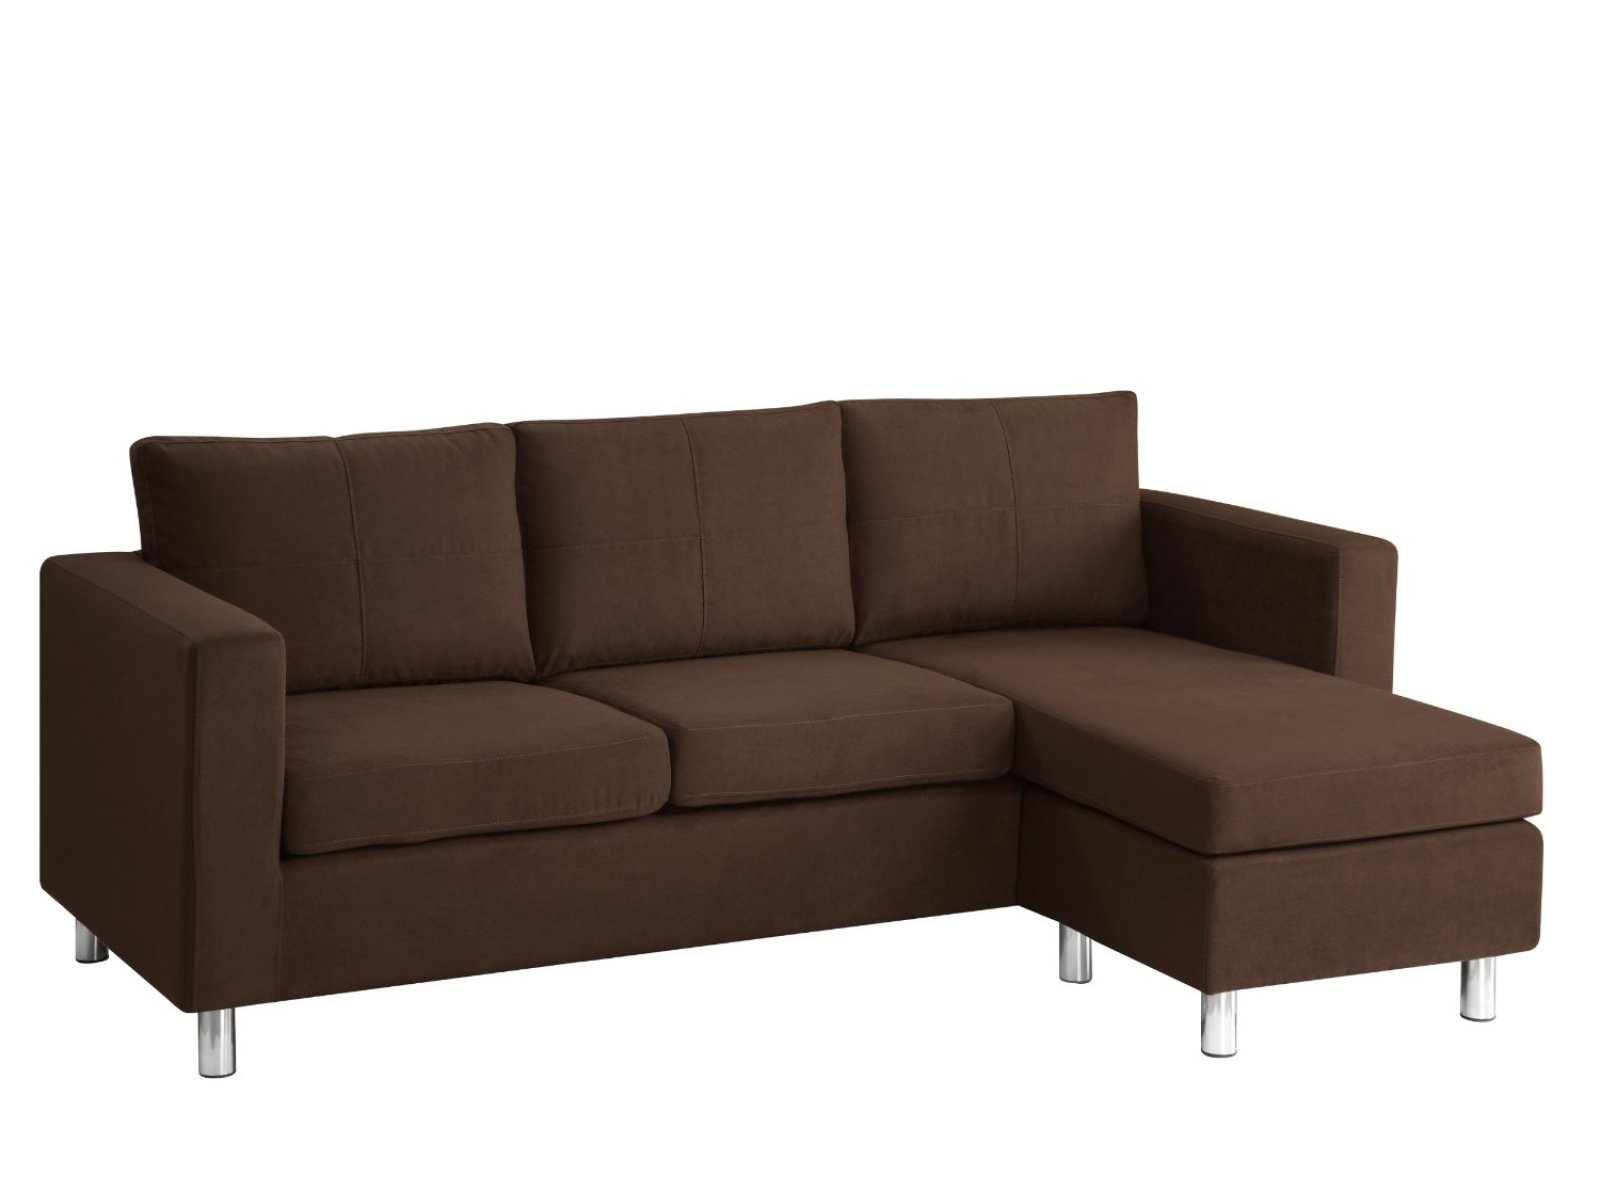 2018 ▻ Sofa : 8 Small Sectional Sofas Reviews Small Leather Sectional With Regard To Sectional Sofas For Small Places (View 1 of 20)